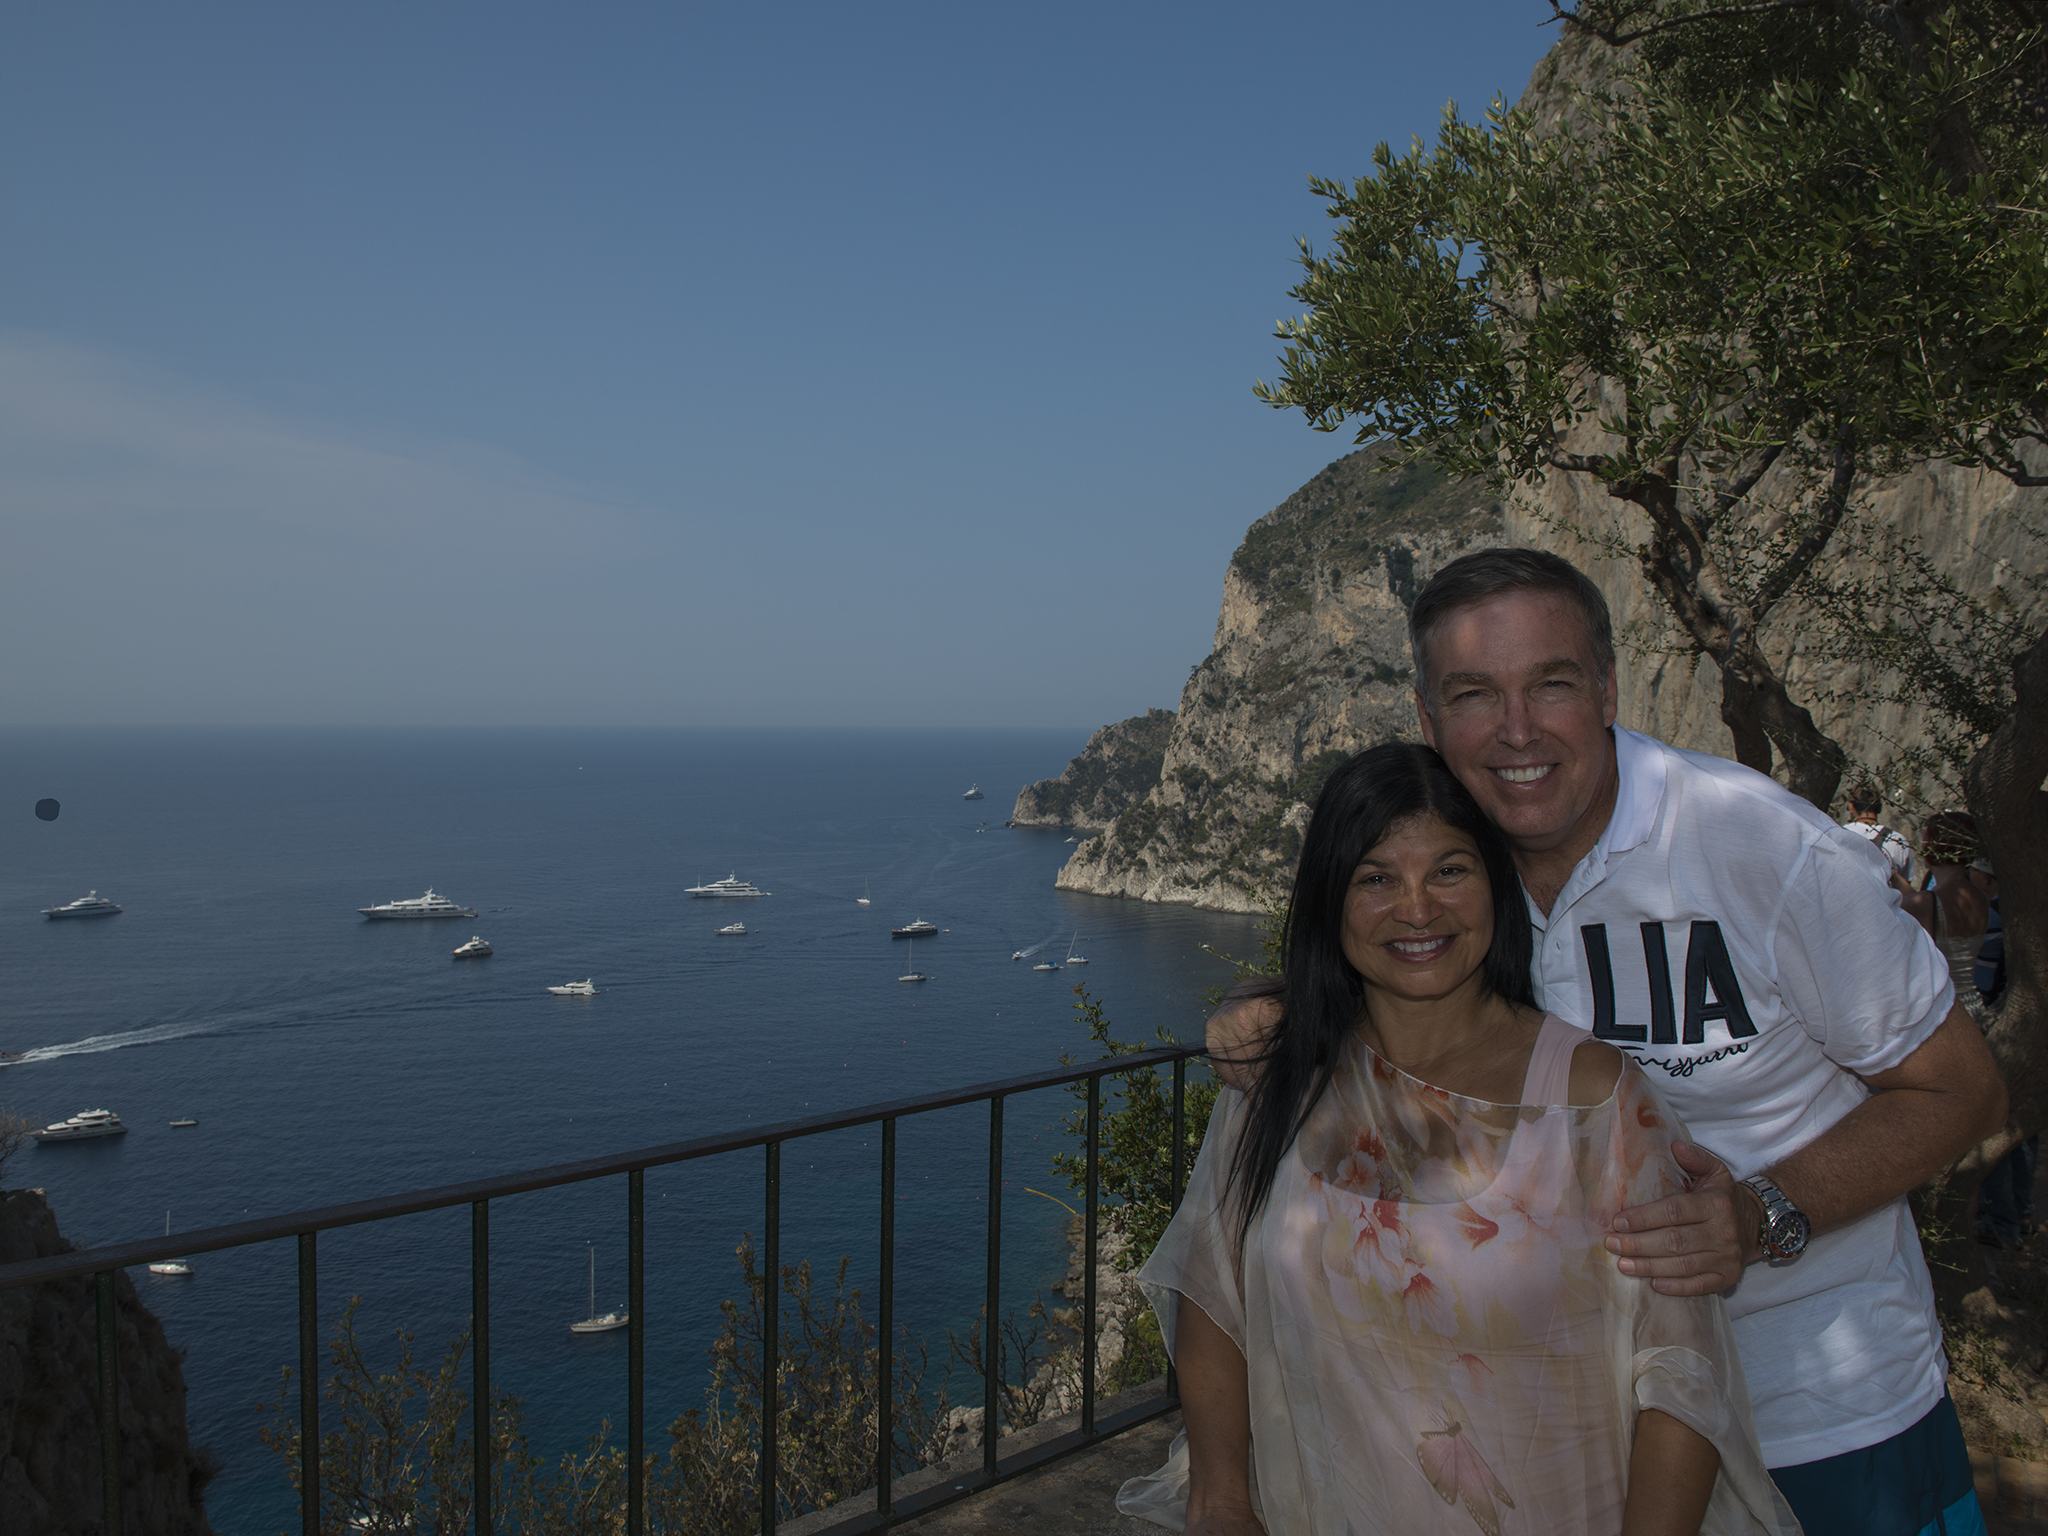 Sorrento on the Amalfi Coast